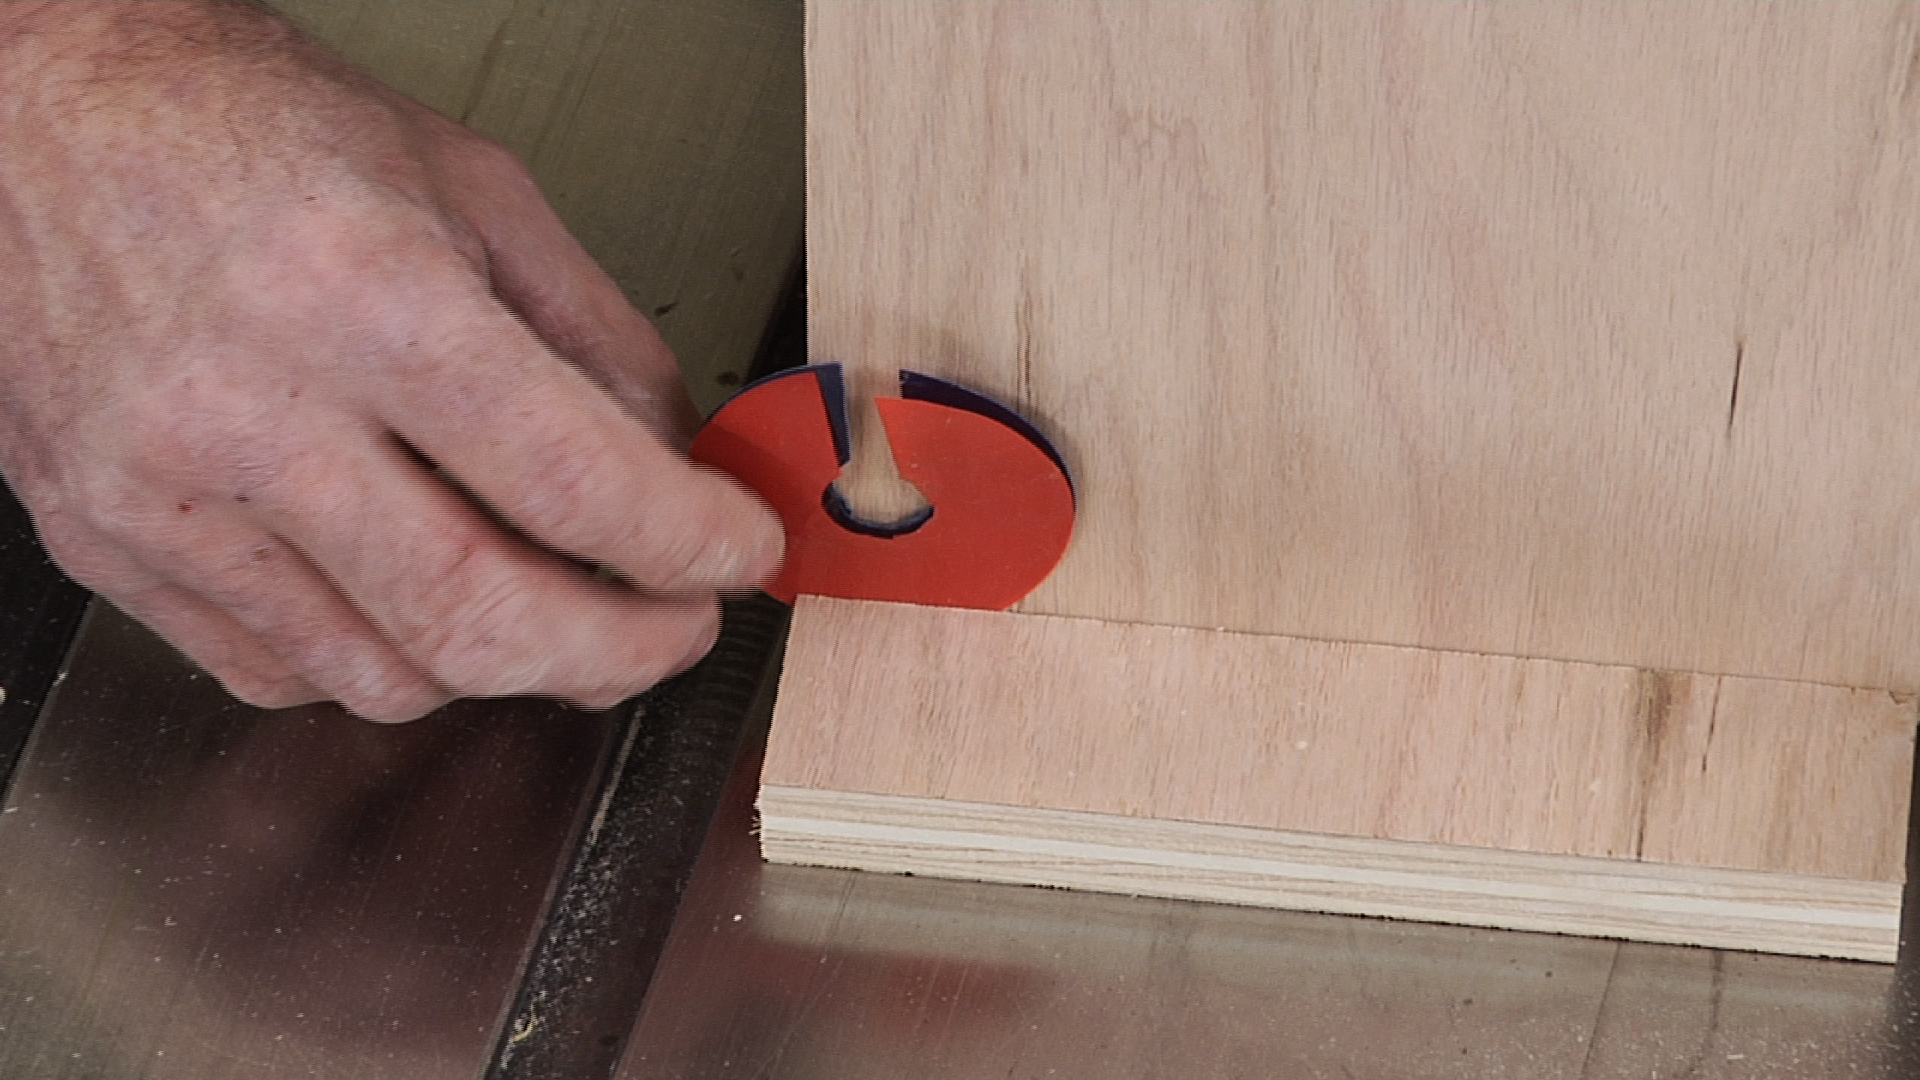 Case Joinery and Details - Fundamentals of Cabinet Making Class 008206_d1e53u_c